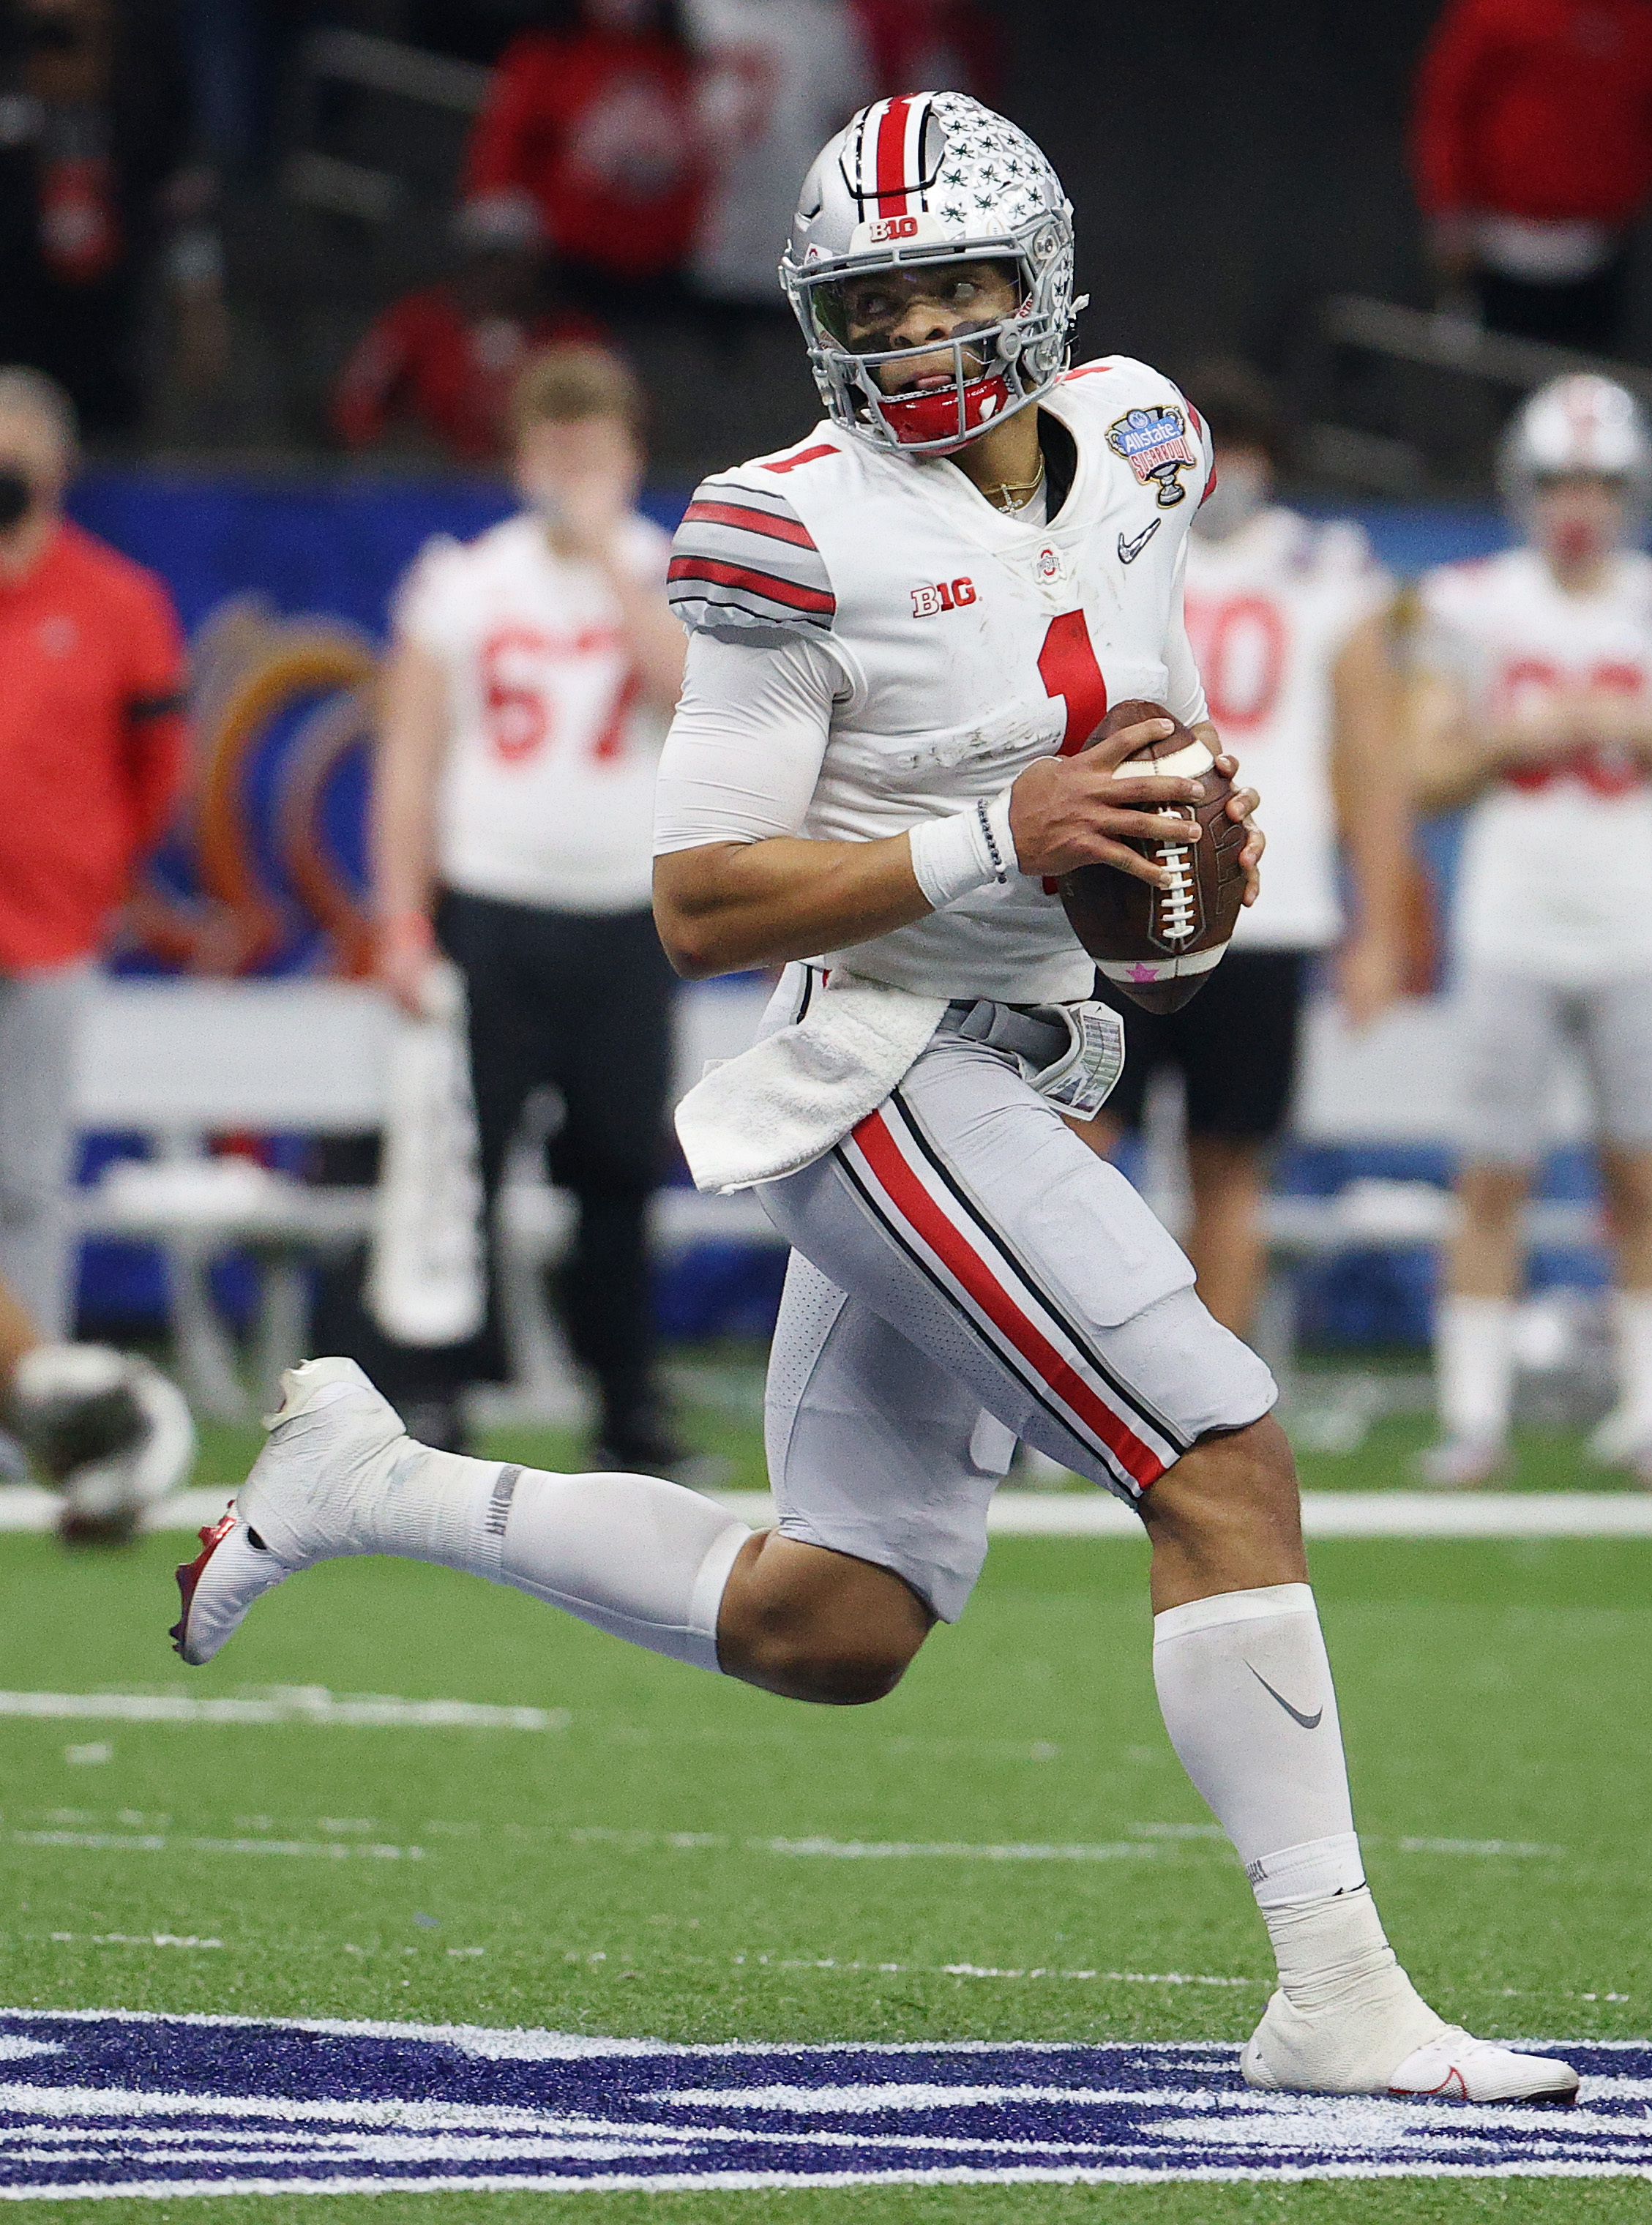 Justin Fields of the Ohio State Buckeyes looks to pass in the first half against the Clemson Tigers during the College Football Playoff semifinal game at the Allstate Sugar Bowl at Mercedes-Benz Superdome on January 01, 2021 in New Orleans, Louisiana.